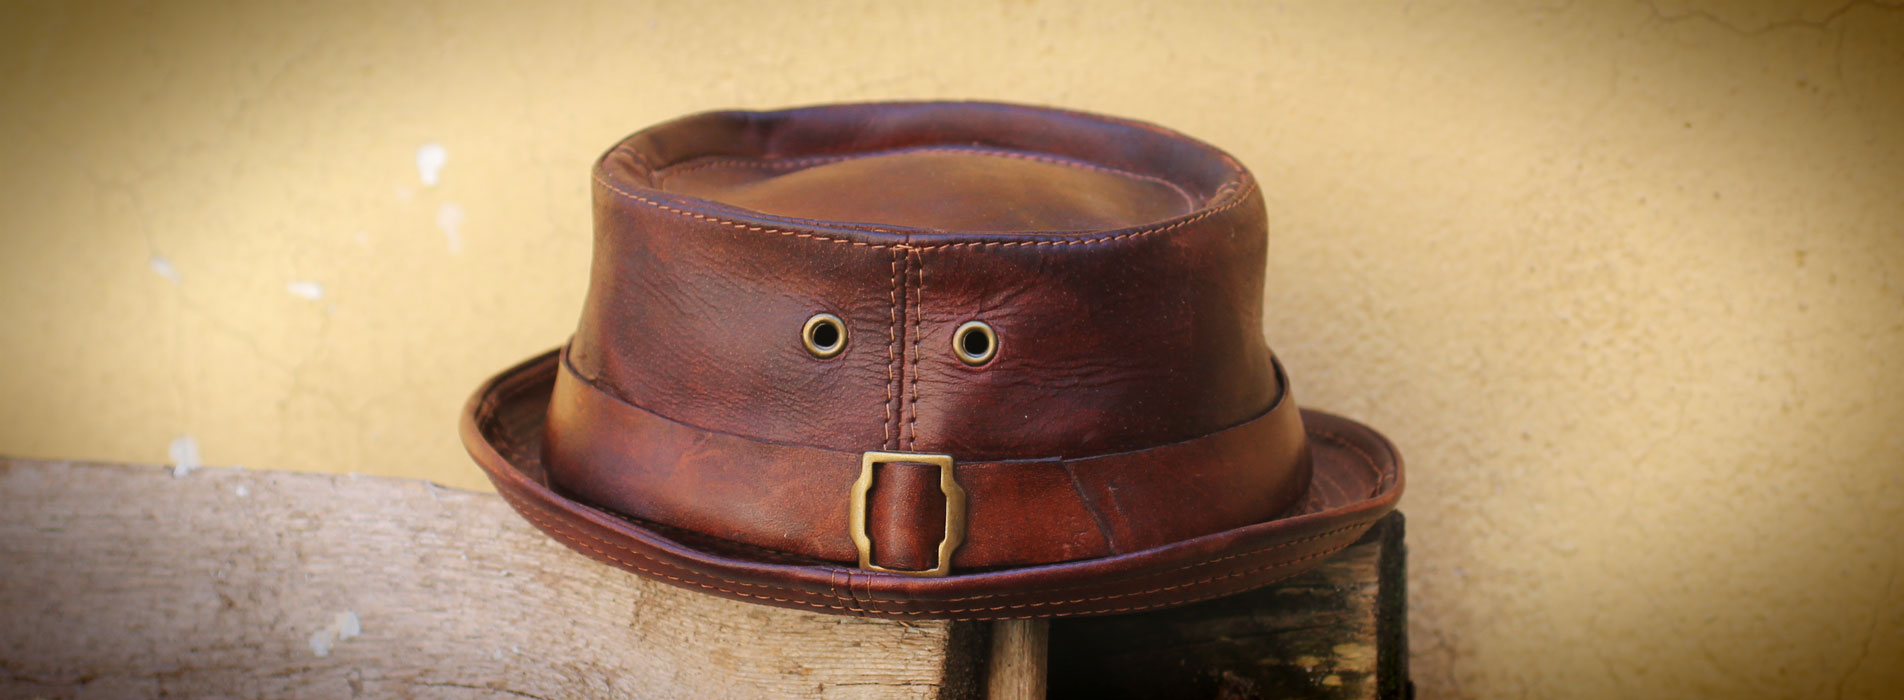 NEW LEATHER PORK PIE HATS